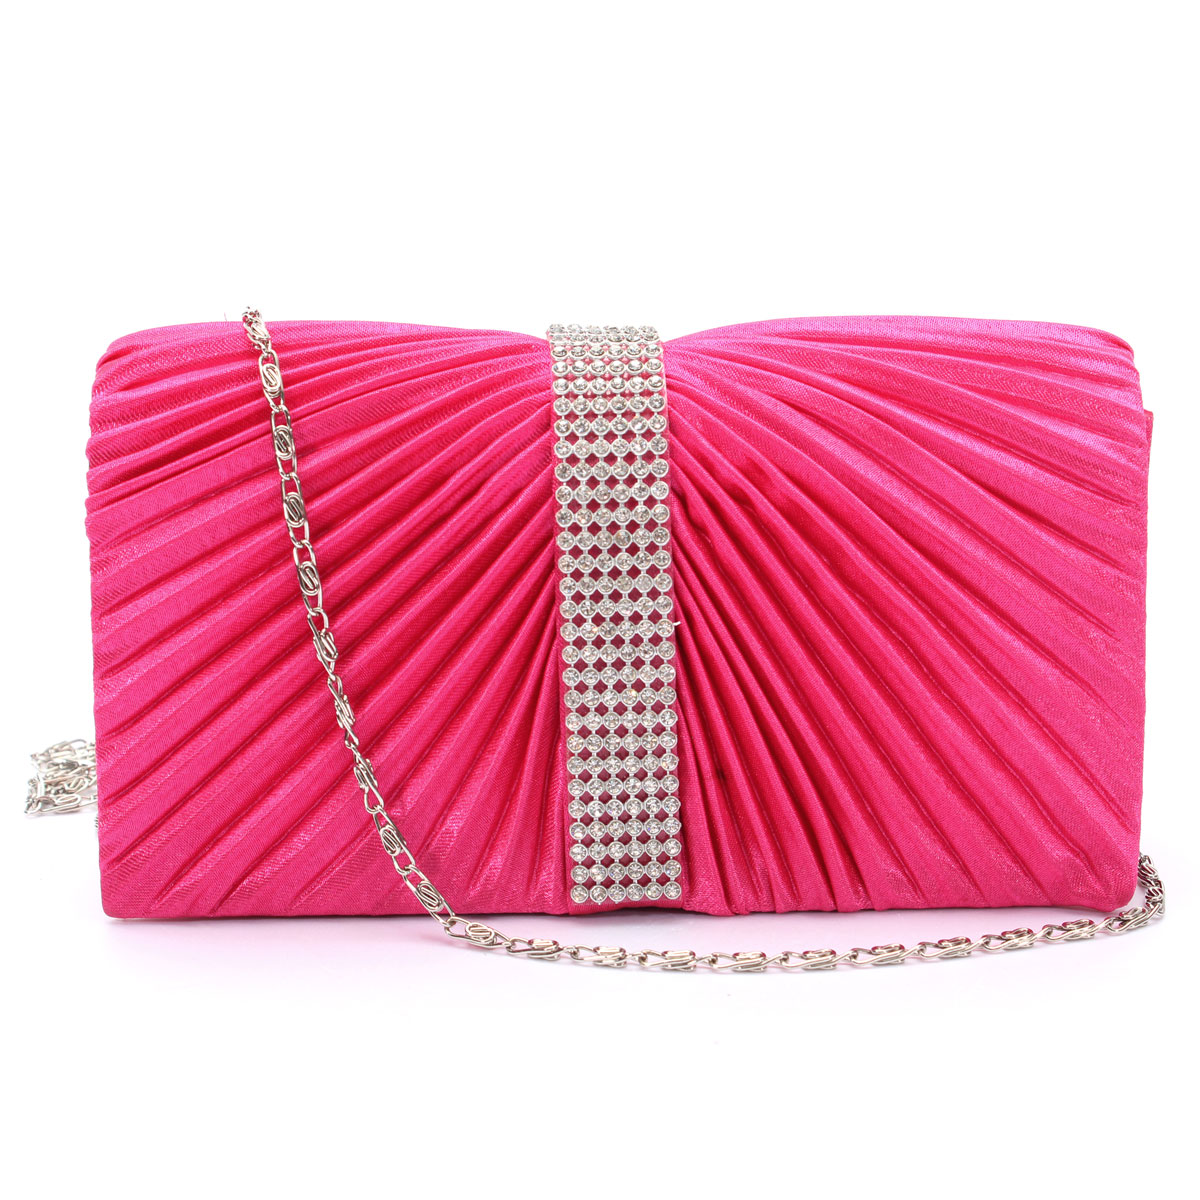 Women Lady Satin Cluth Purse Evening Party Prom Wedding Bridal Shoulder Bag HOT